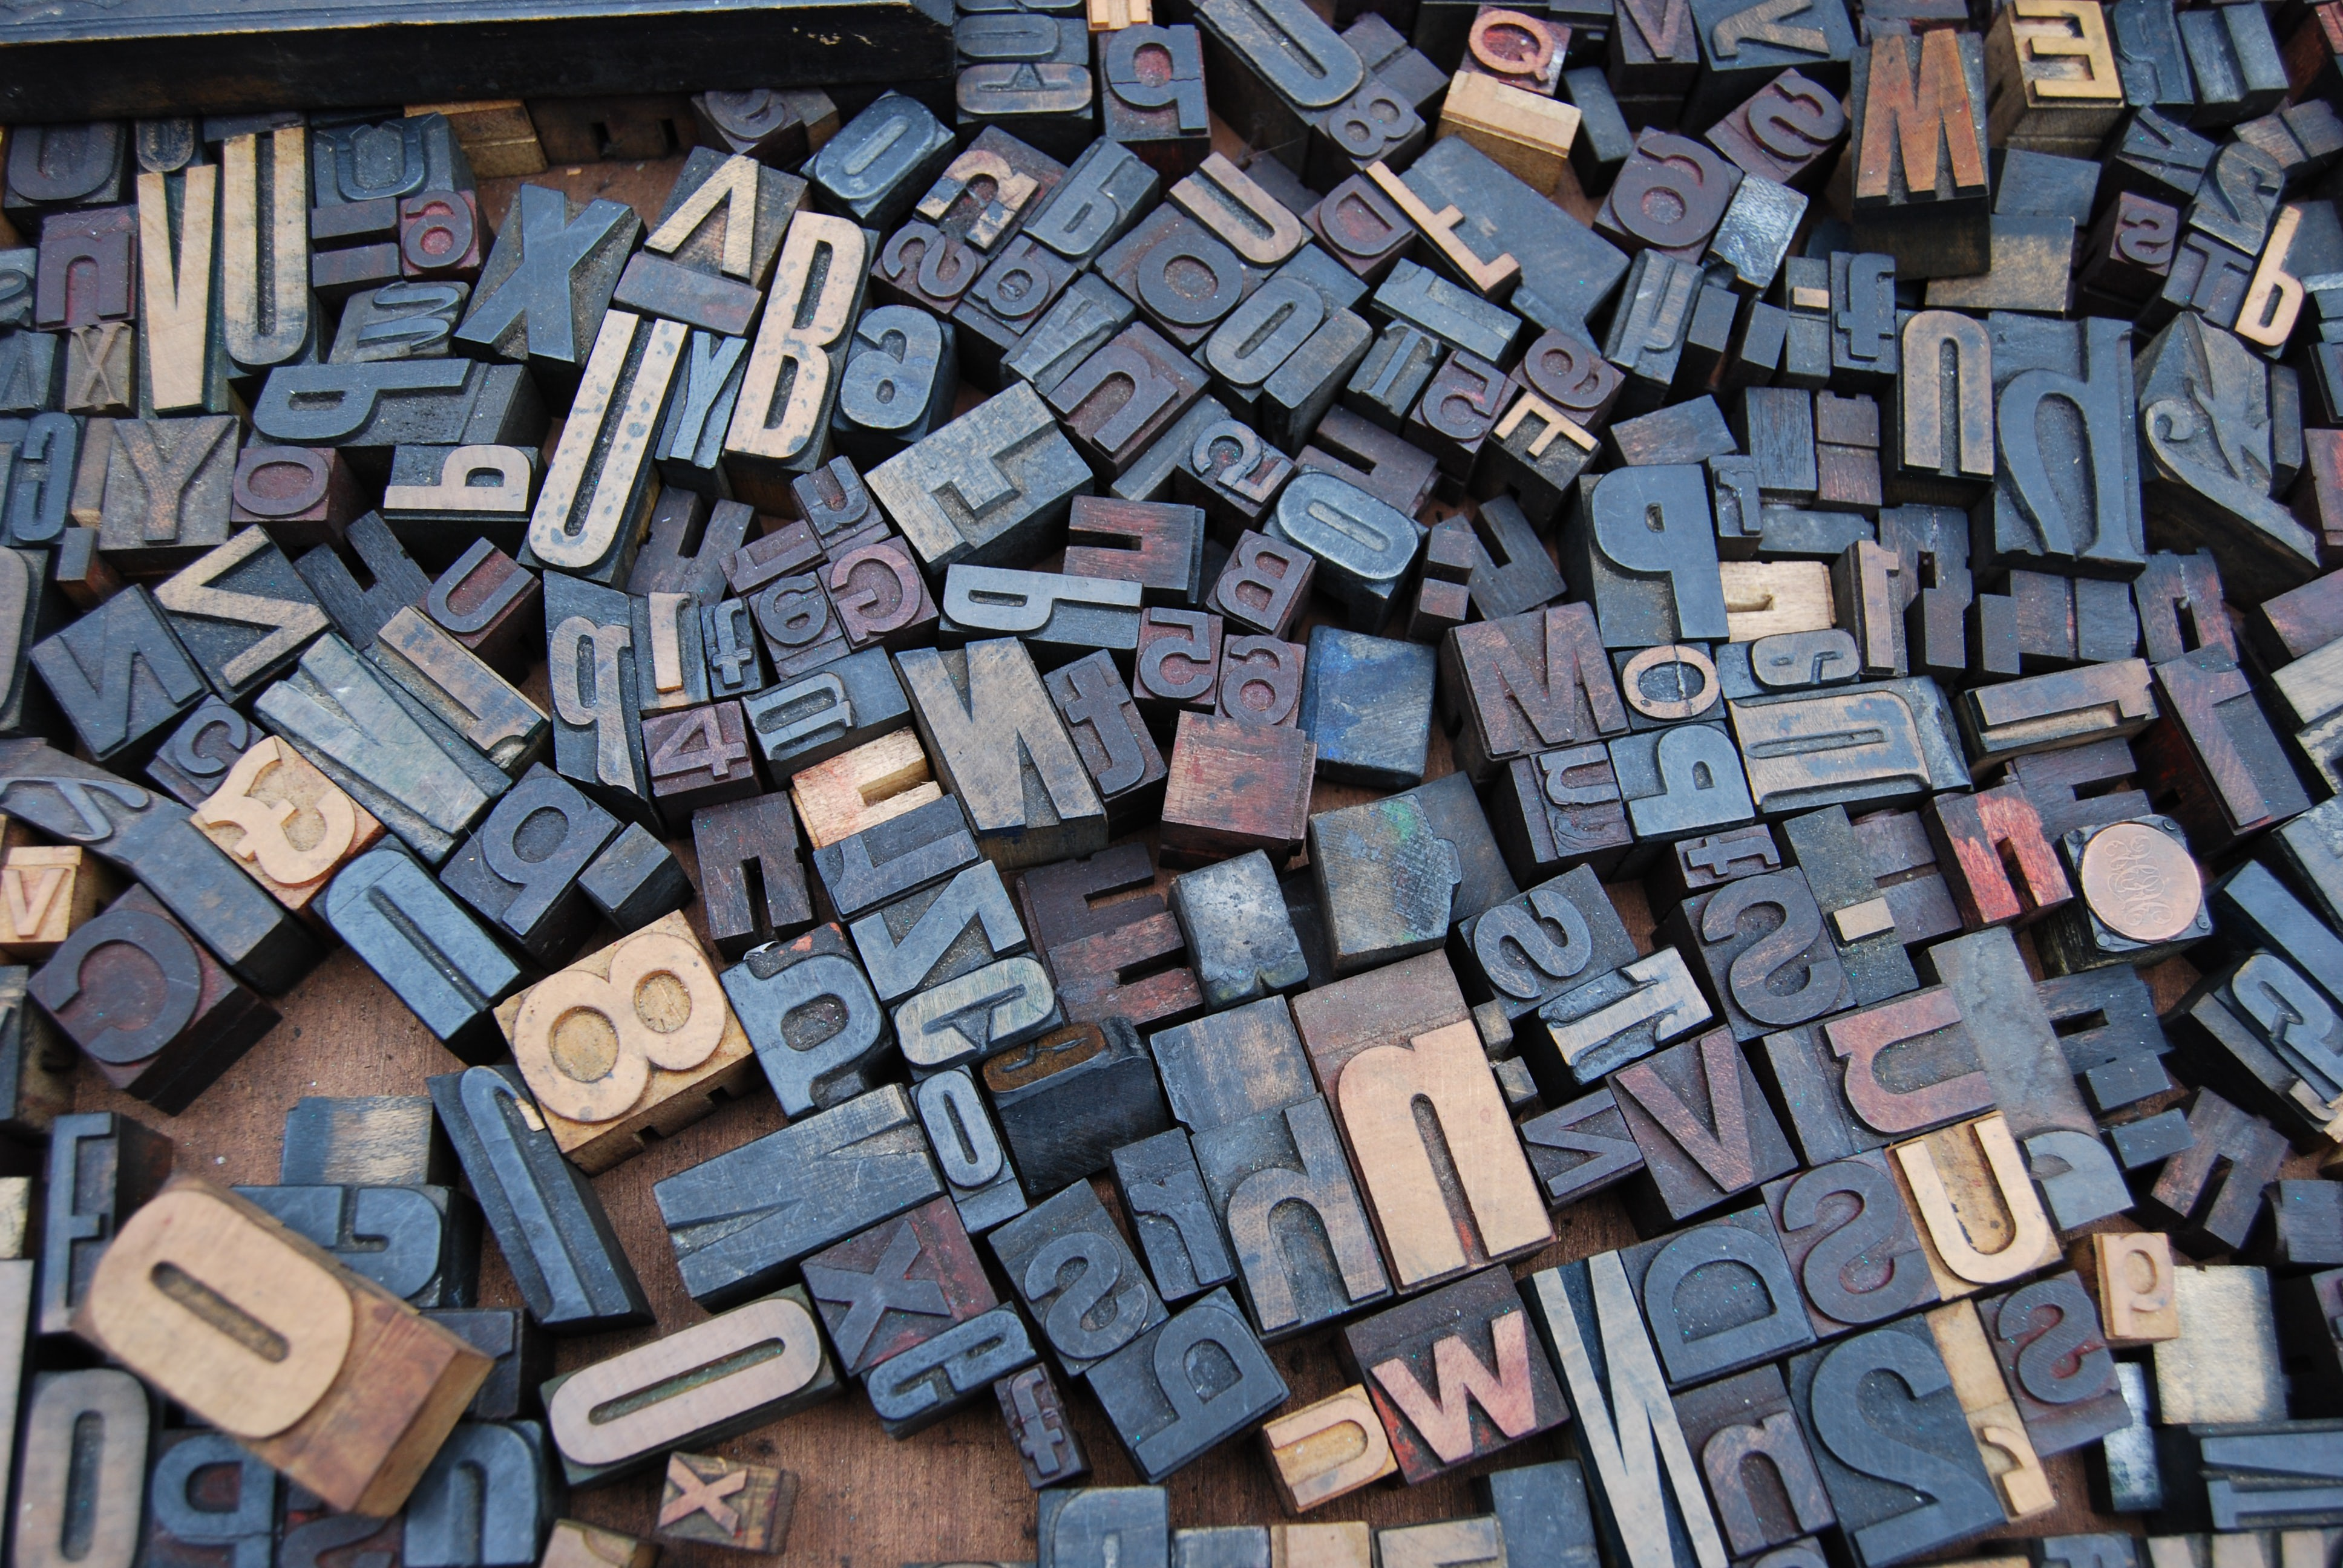 Wooden blocks with letters and numbers